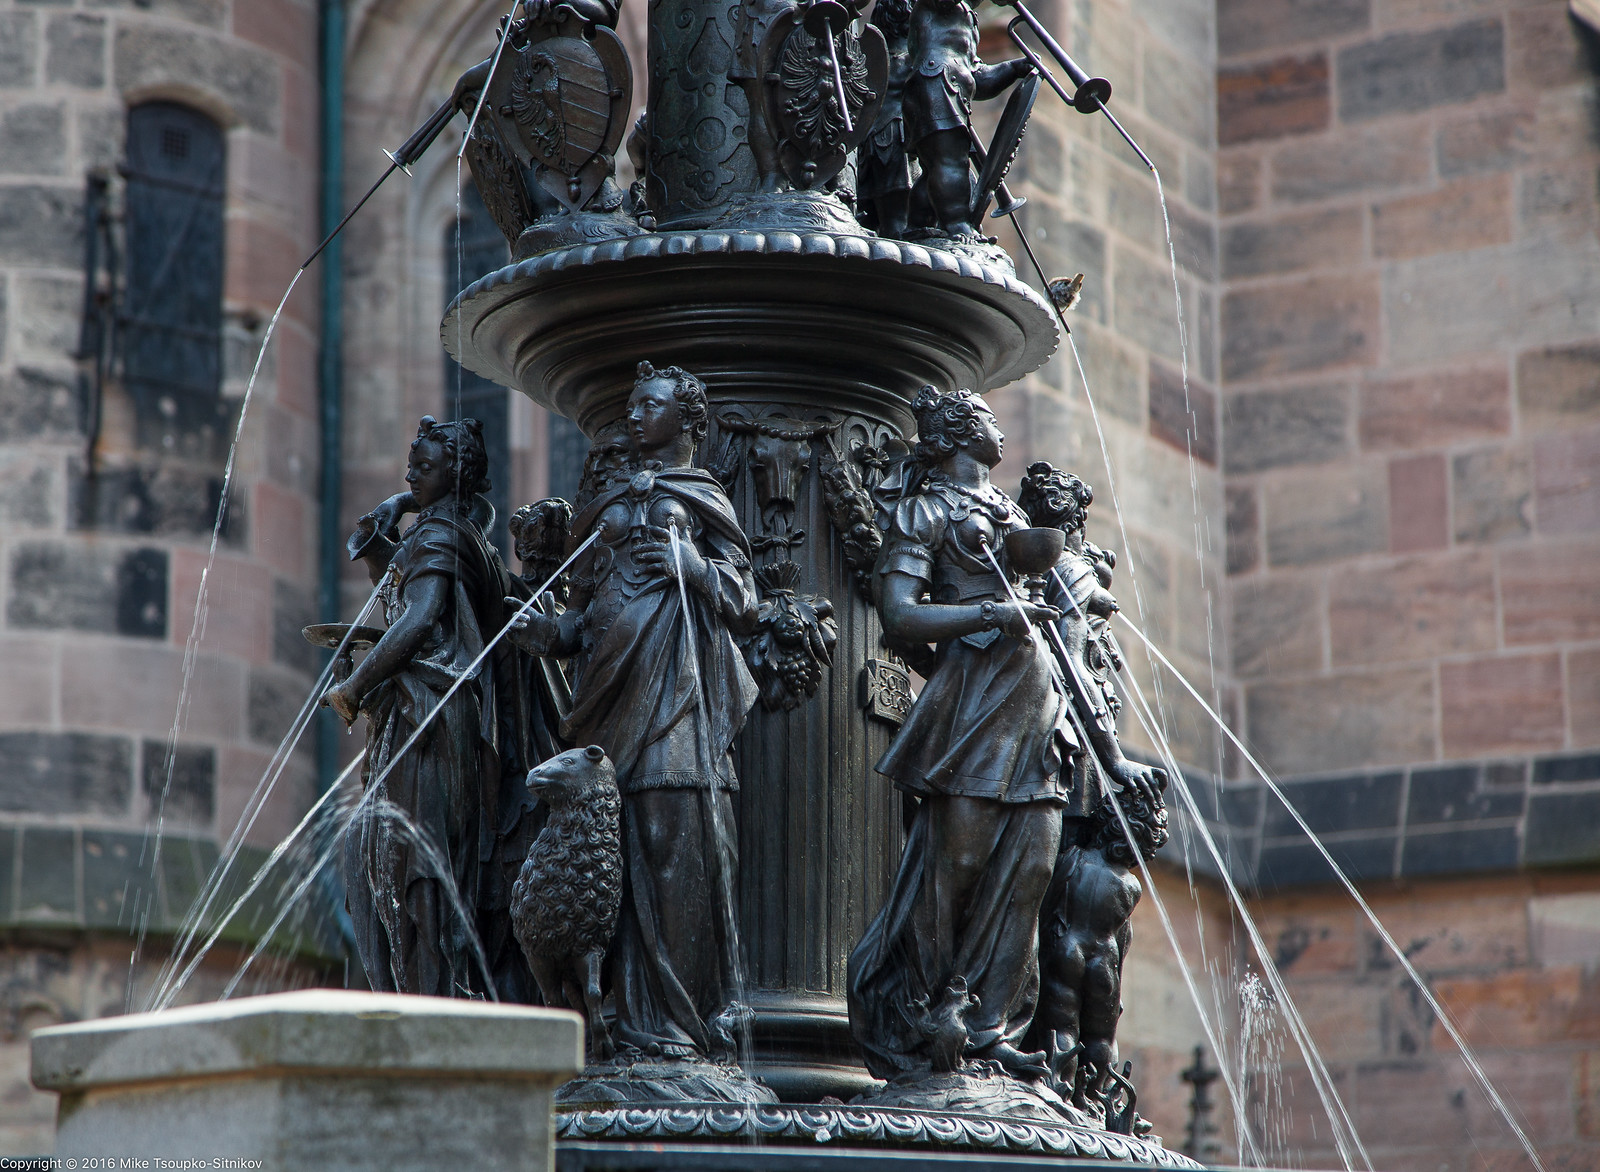 Nuremberg. Tugendbrunnen, or the Fountain of Virtues at Lorenzplatz